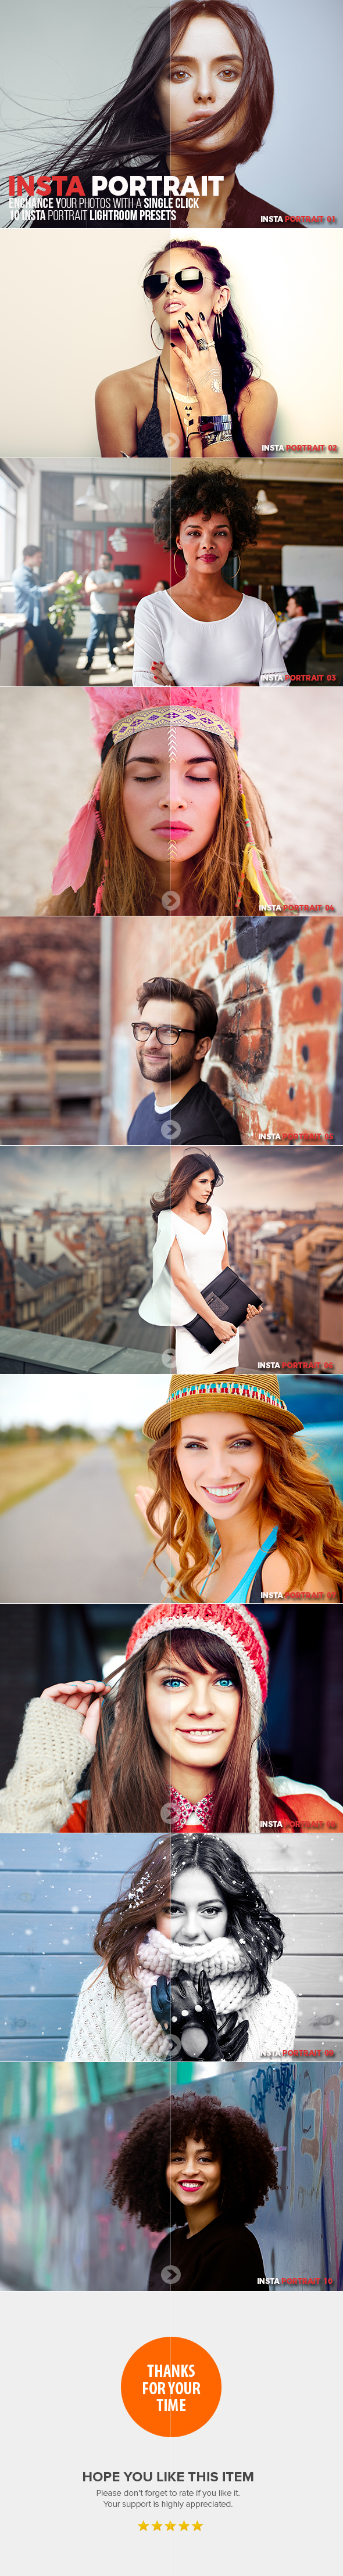 GraphicRiver 10 Insta Portrait Lightroom Presets 20610684